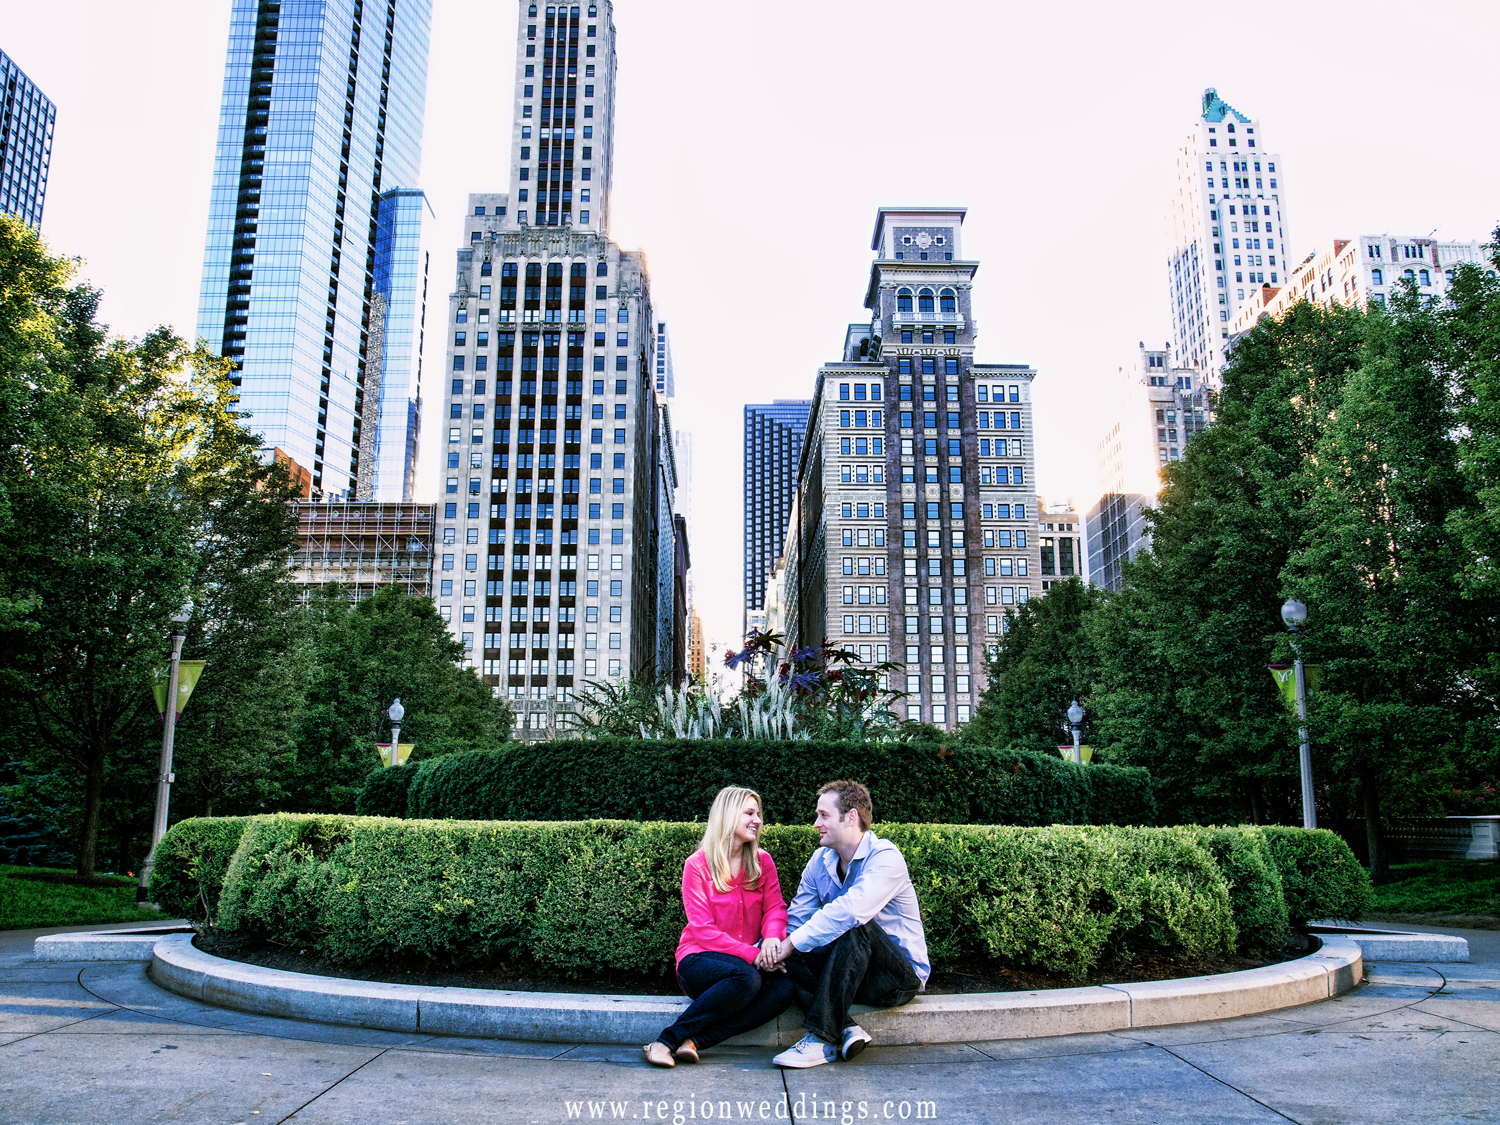 A couple sits at the edge of a flower garden with the tall buildings of Chicago in the background.